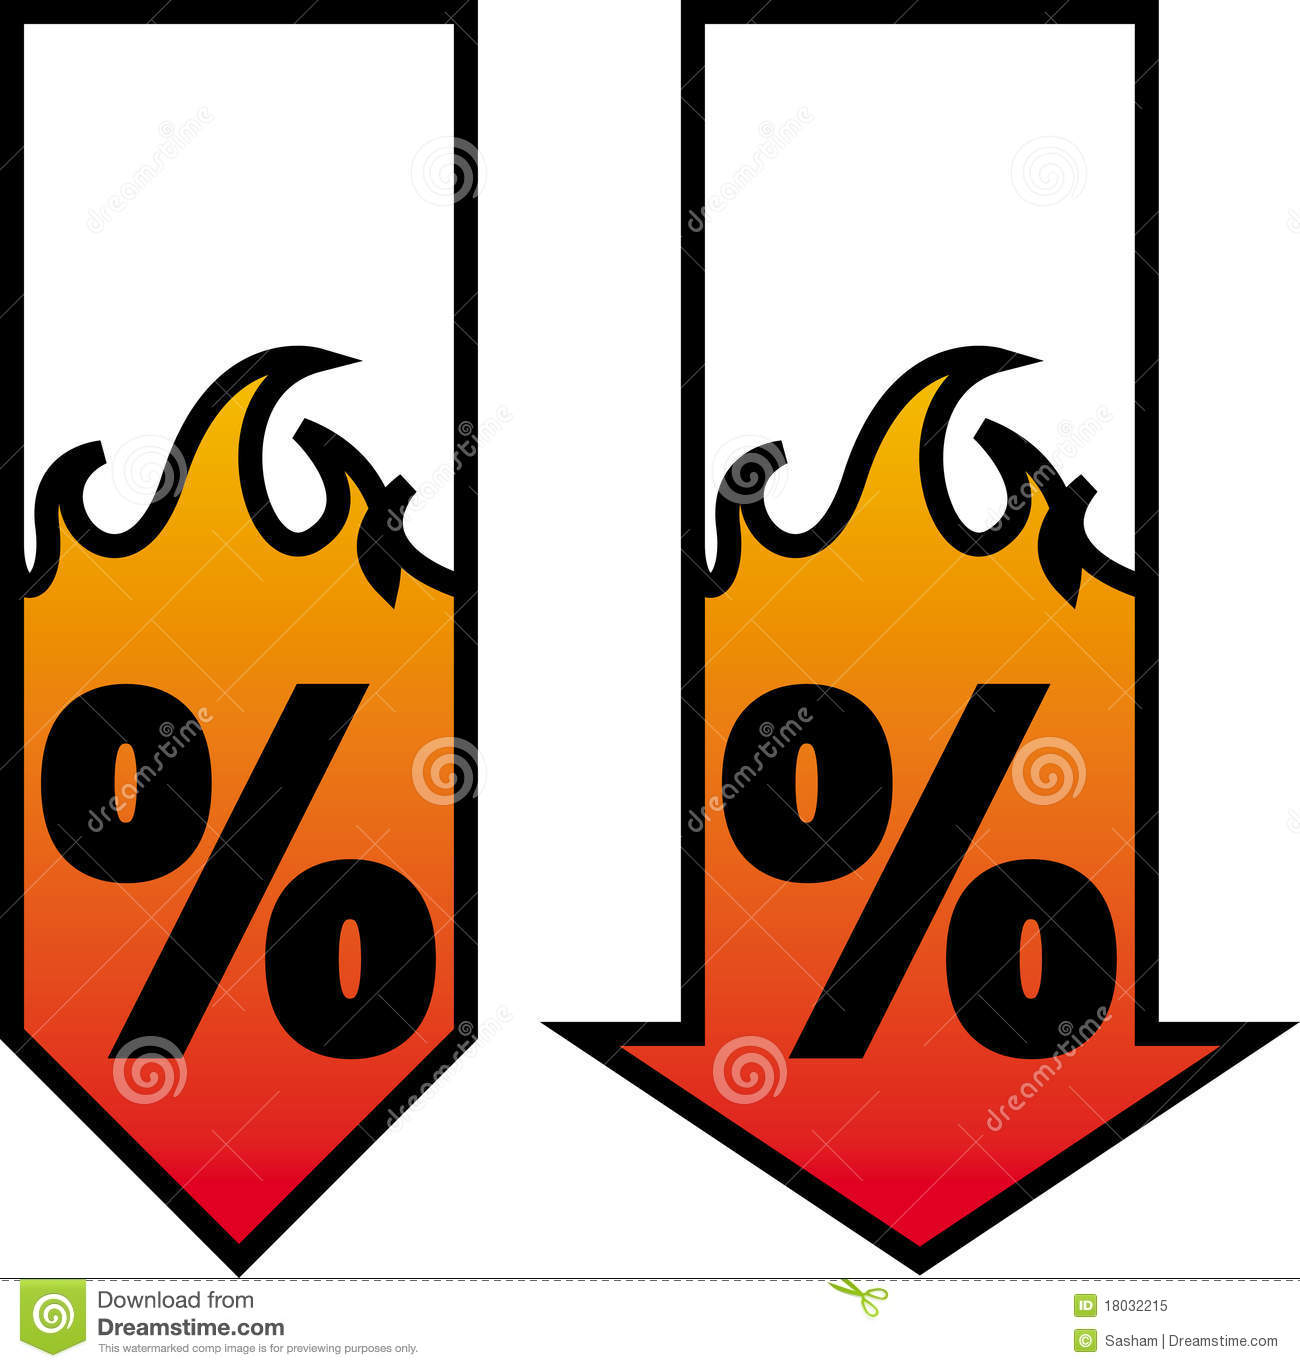 Burning sale. Vector